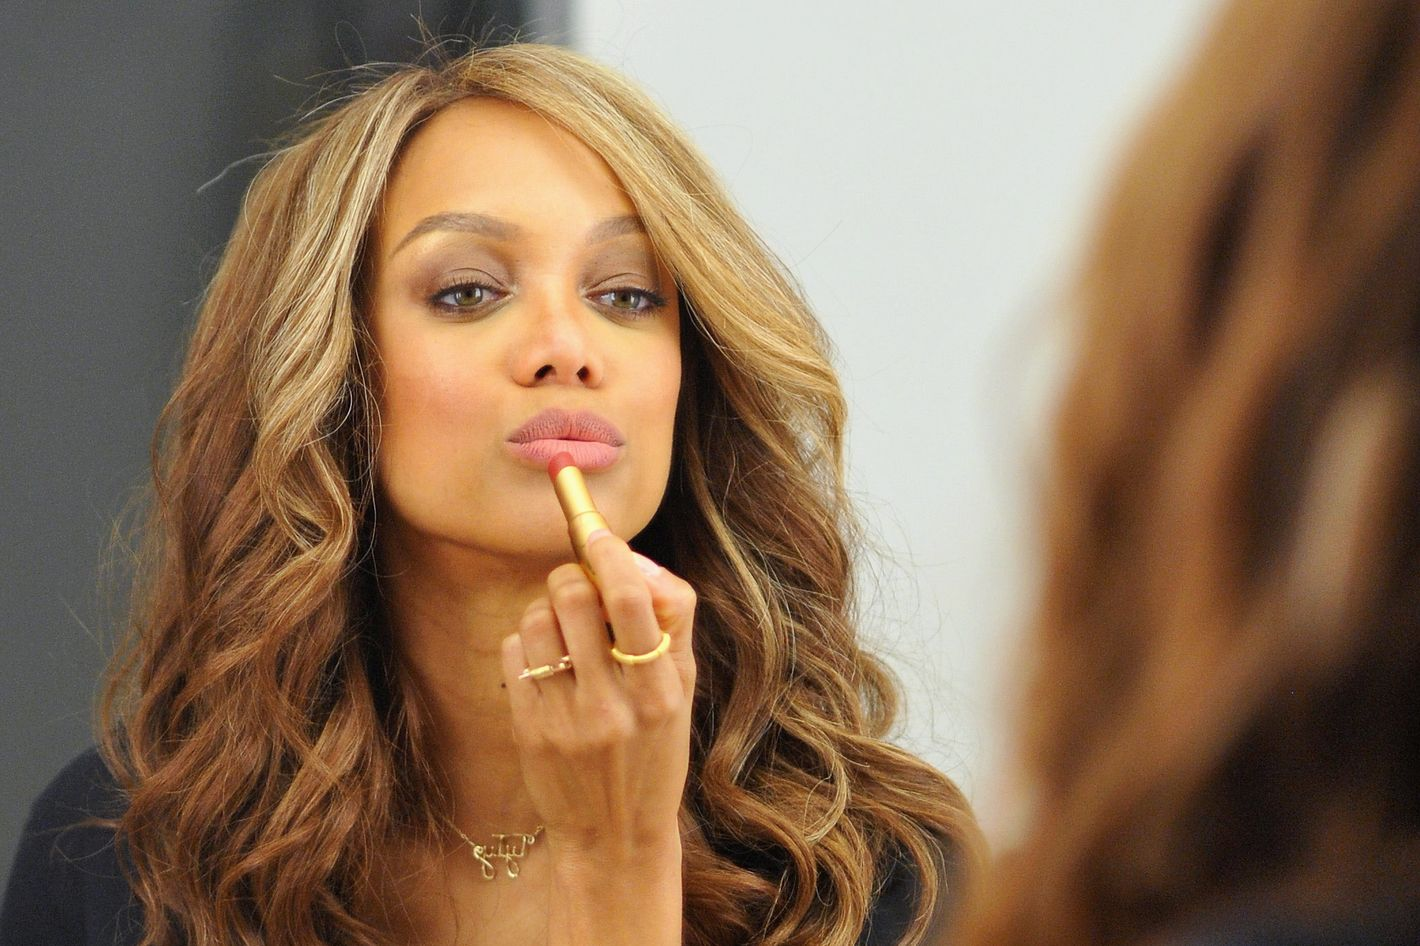 Tyra Banks trades beauty pointers